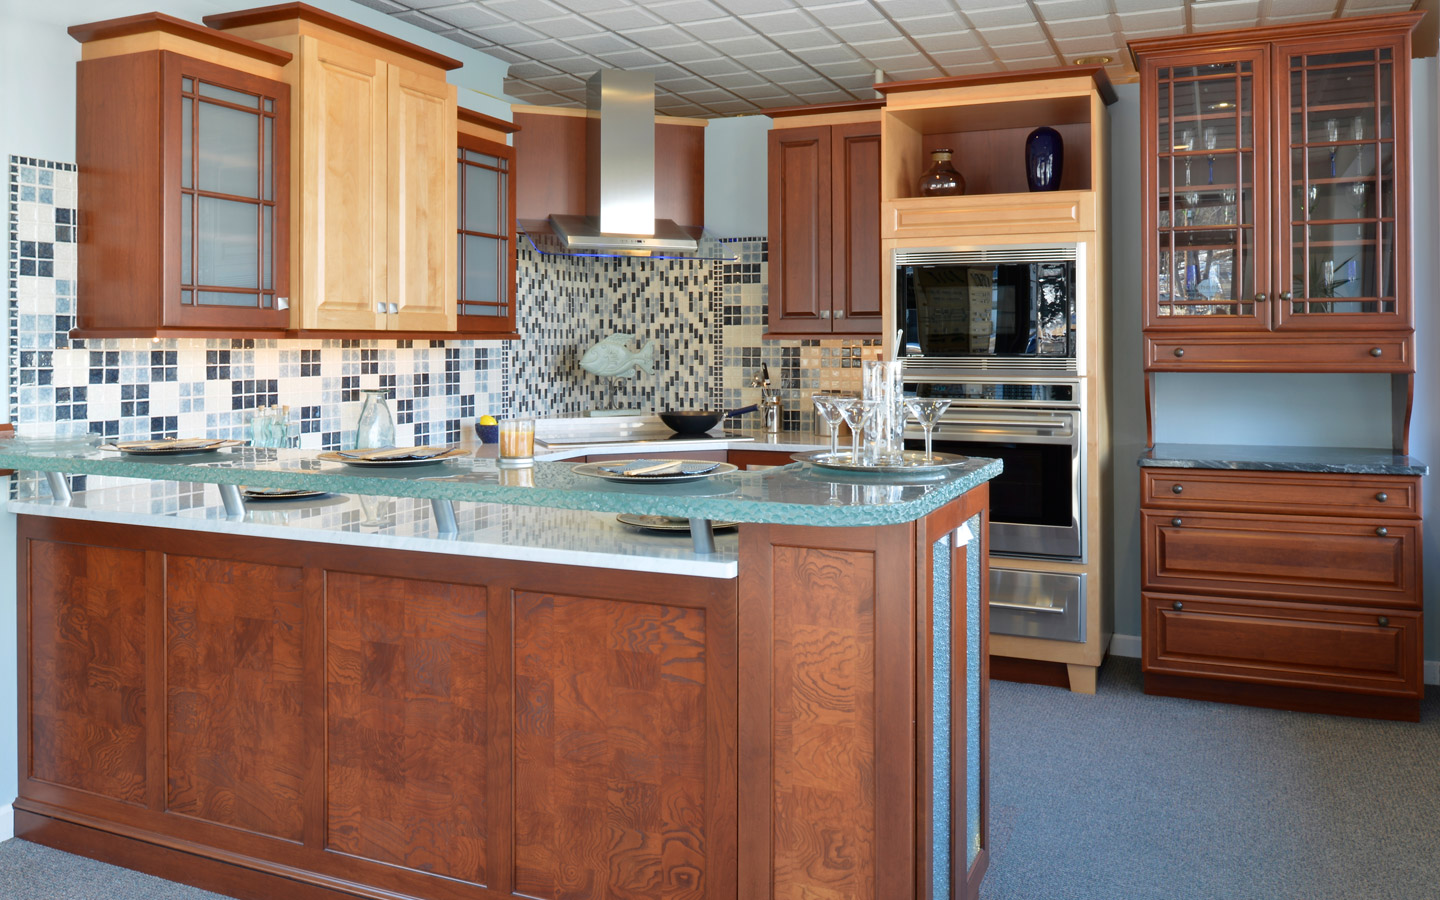 Adams Kitchen And Bath Is A Full Service Remodeling Company